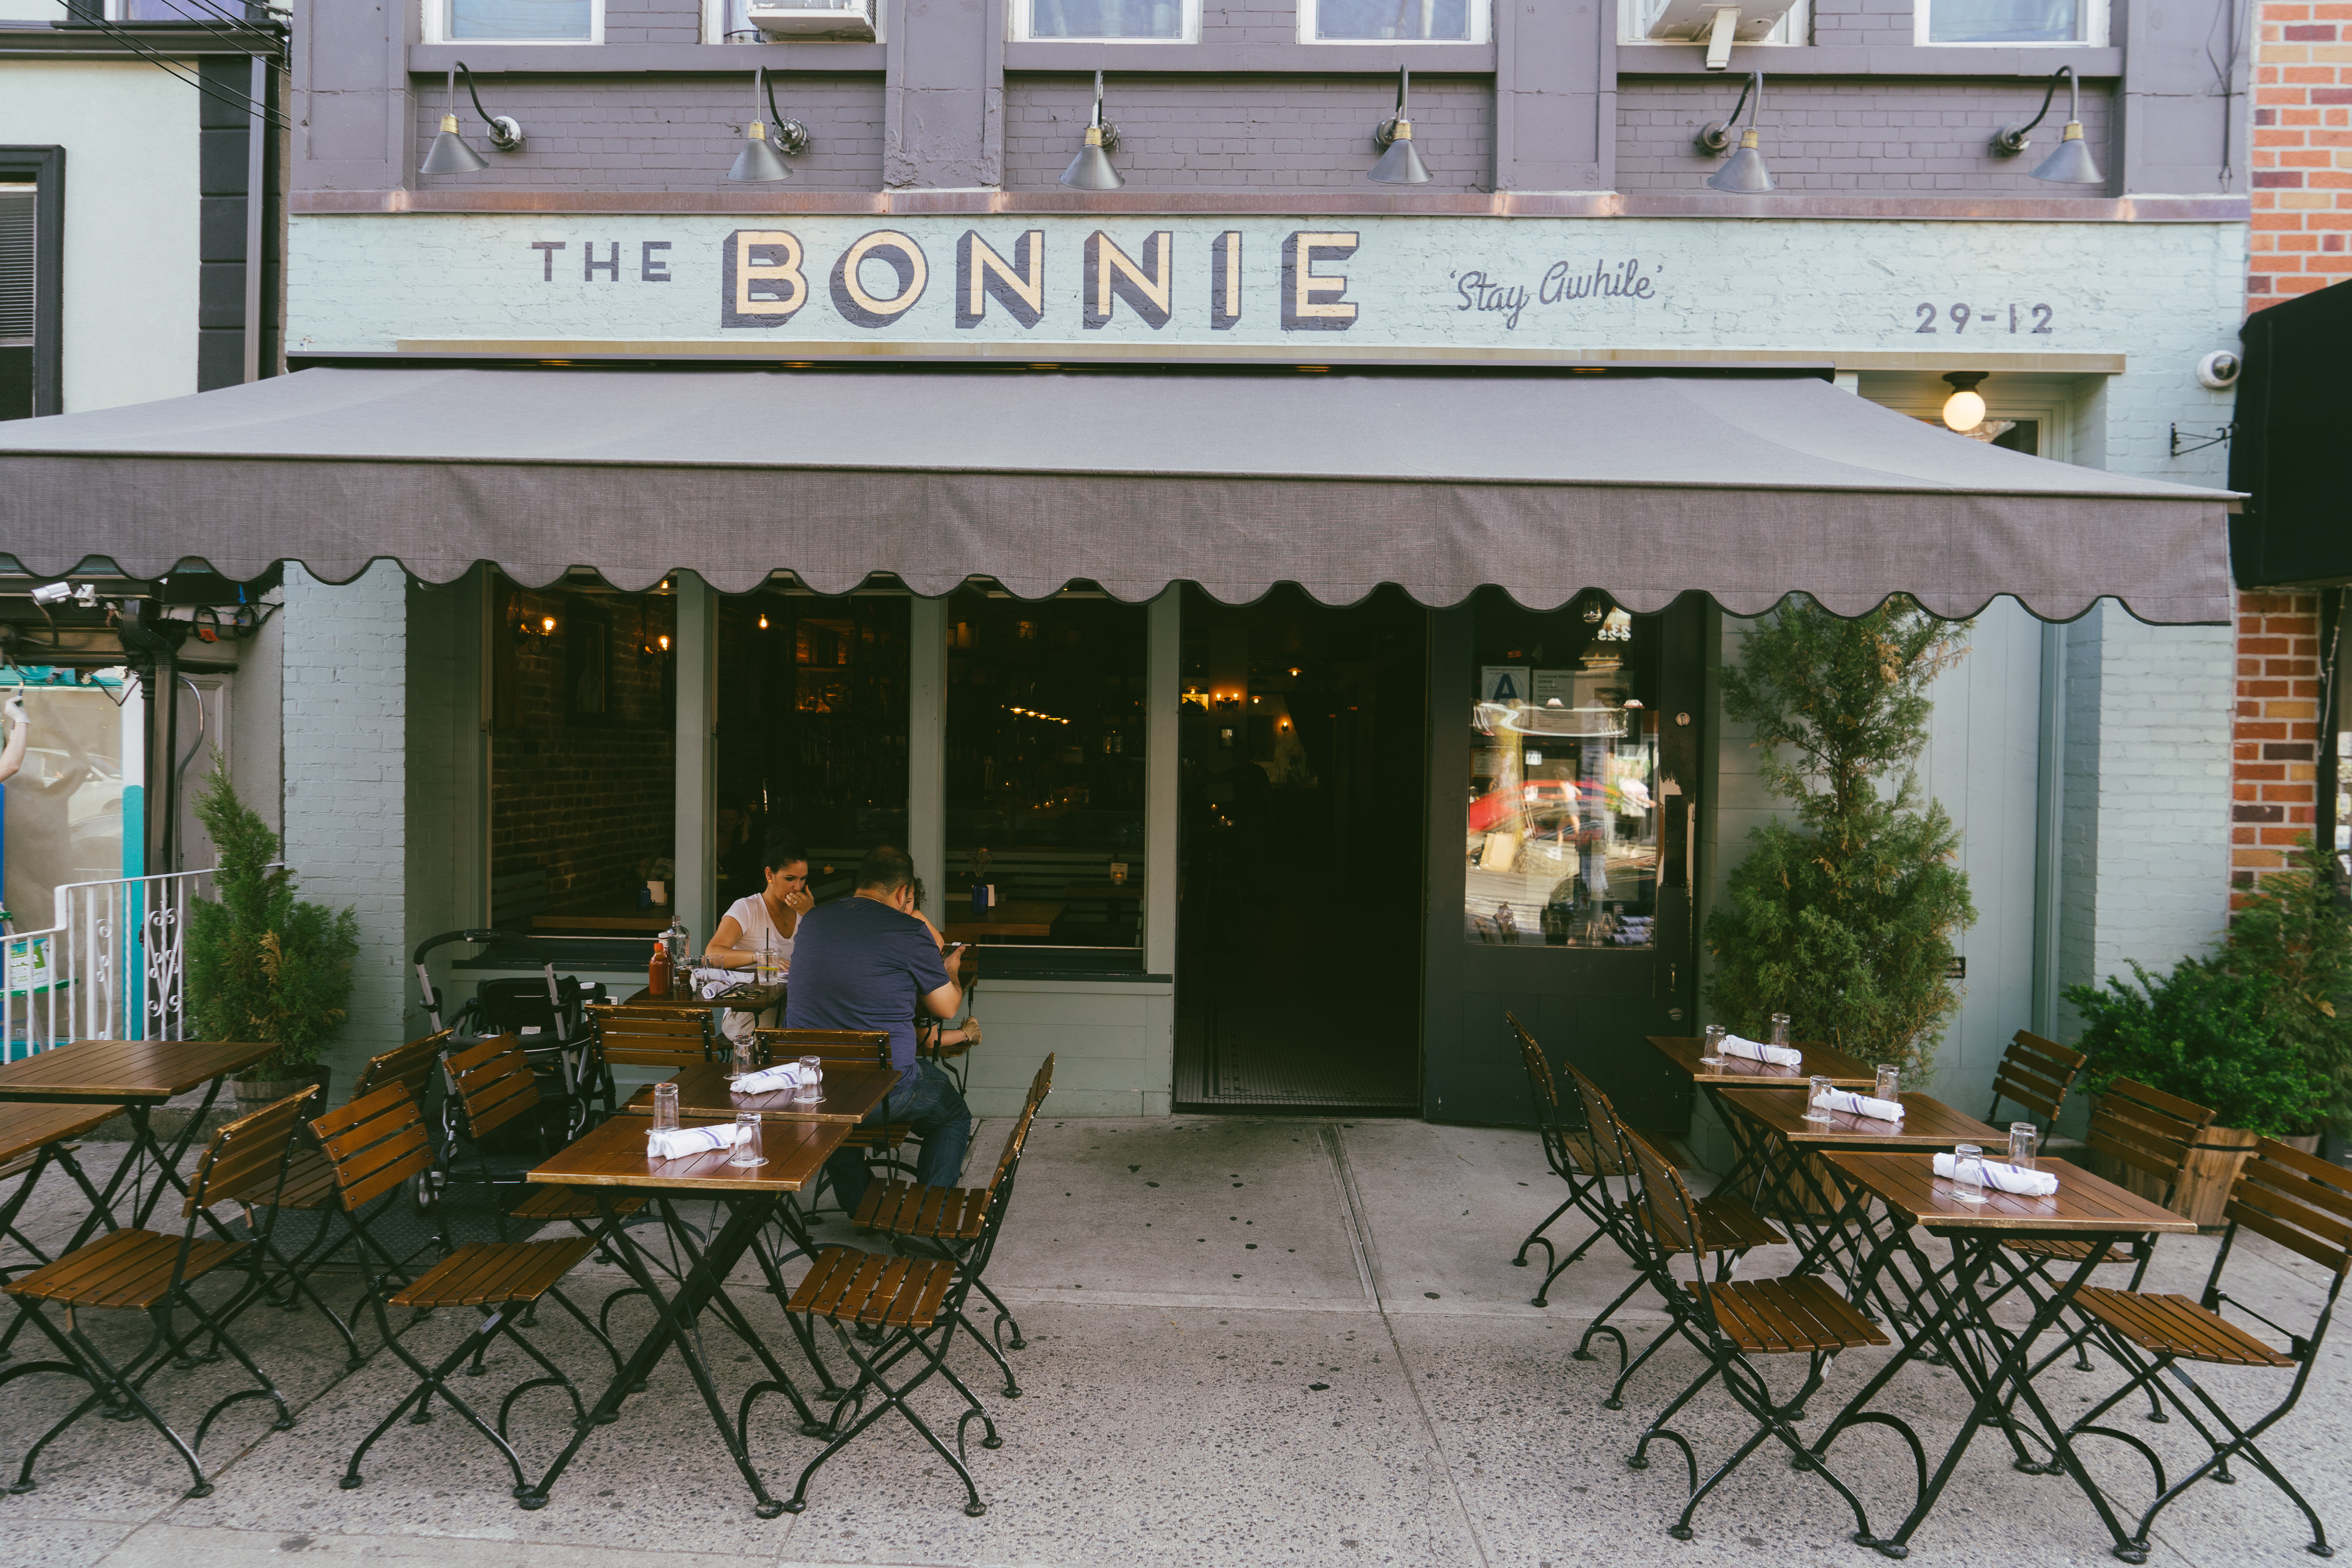 75 great places to eat outside right now new york the infatuation - Restaurant Patio